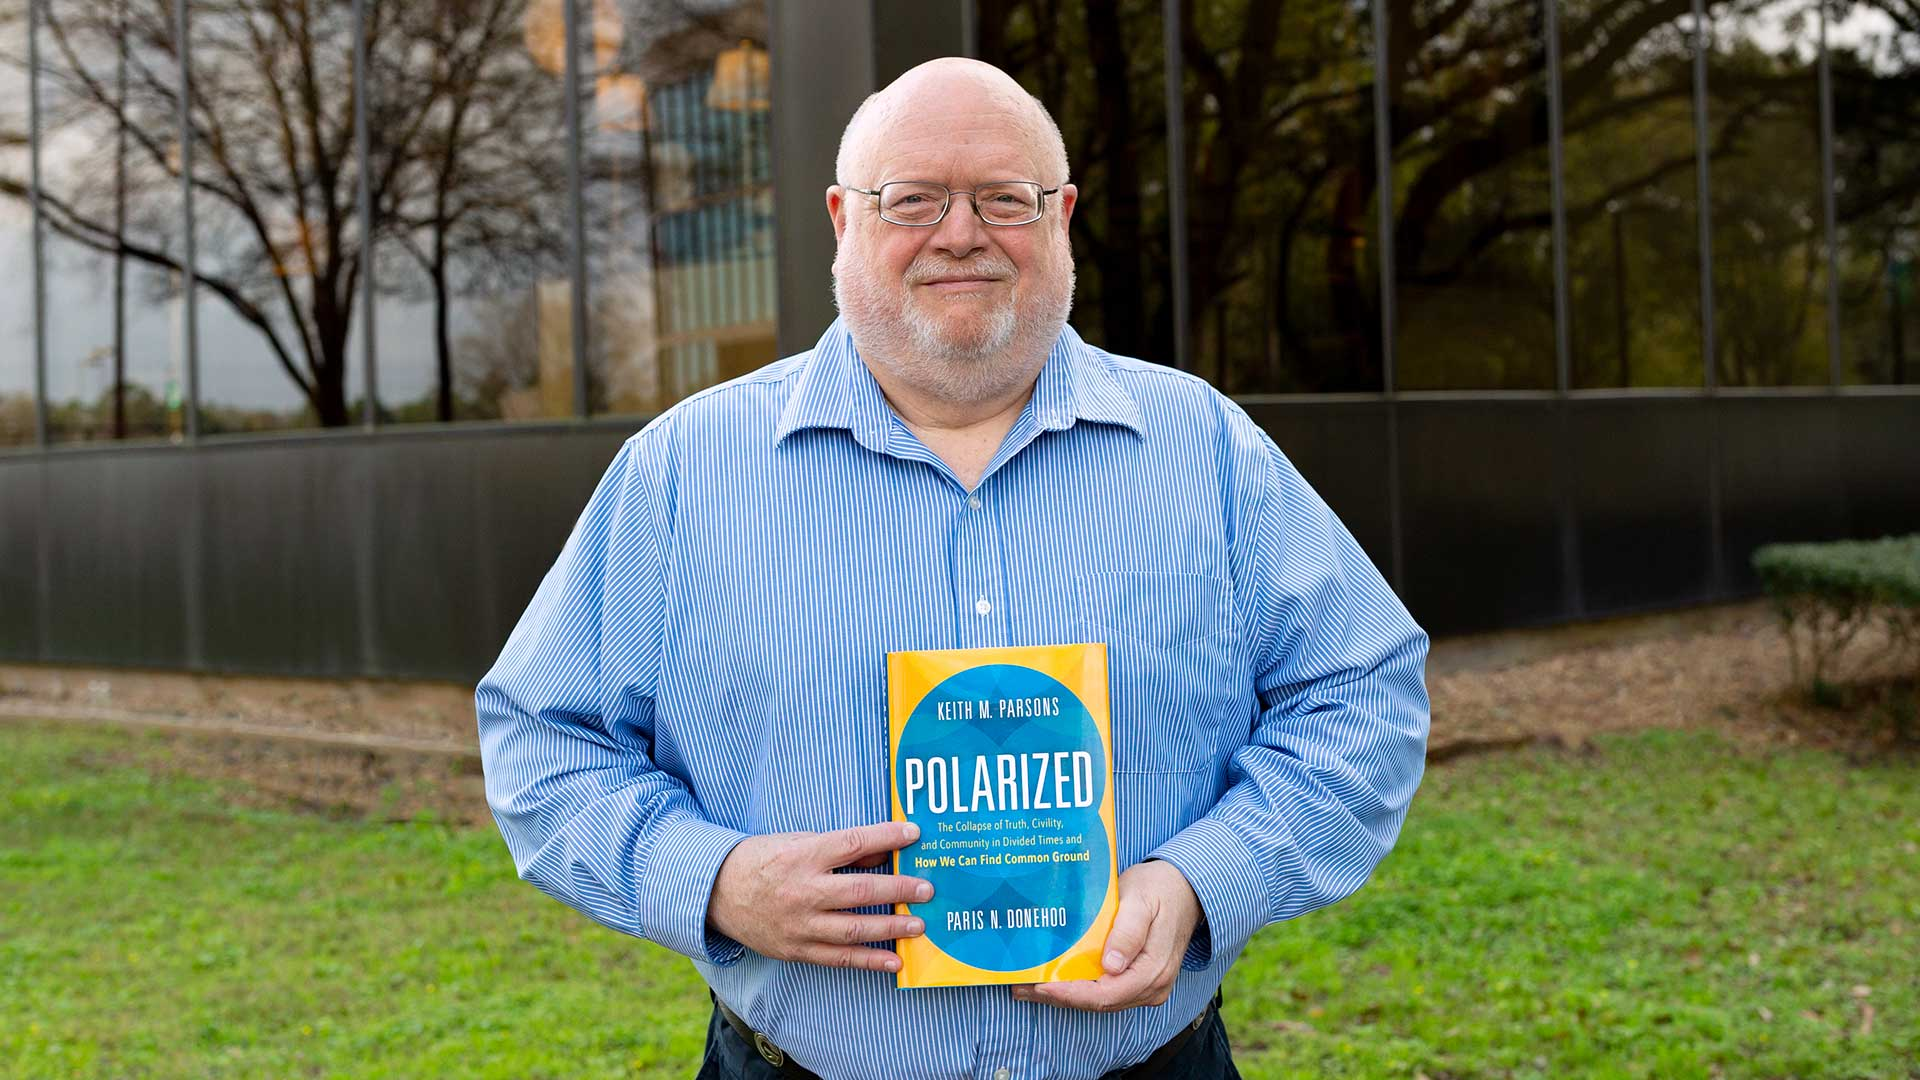 UHCL prof's book aims to elevate political discourse, focus on common ground